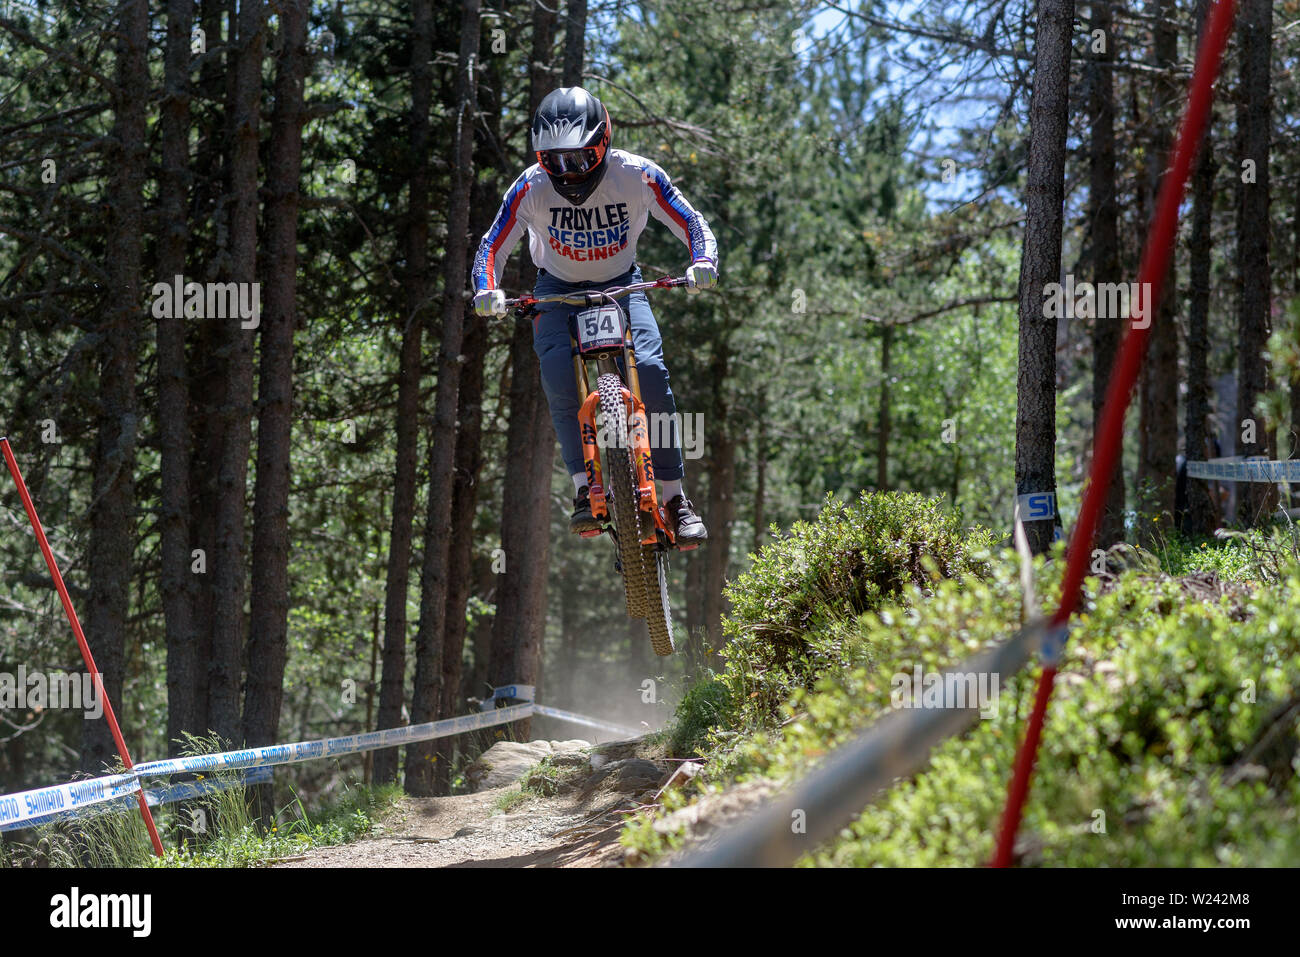 VALLNORD, ANDORRA  - JULY 5 2019:  CYCLIST in the MERCEDES-BENZ UCI MTB WORLD CUP 2019 - DHI Vallnord, Andorra on July 2019 - Stock Image